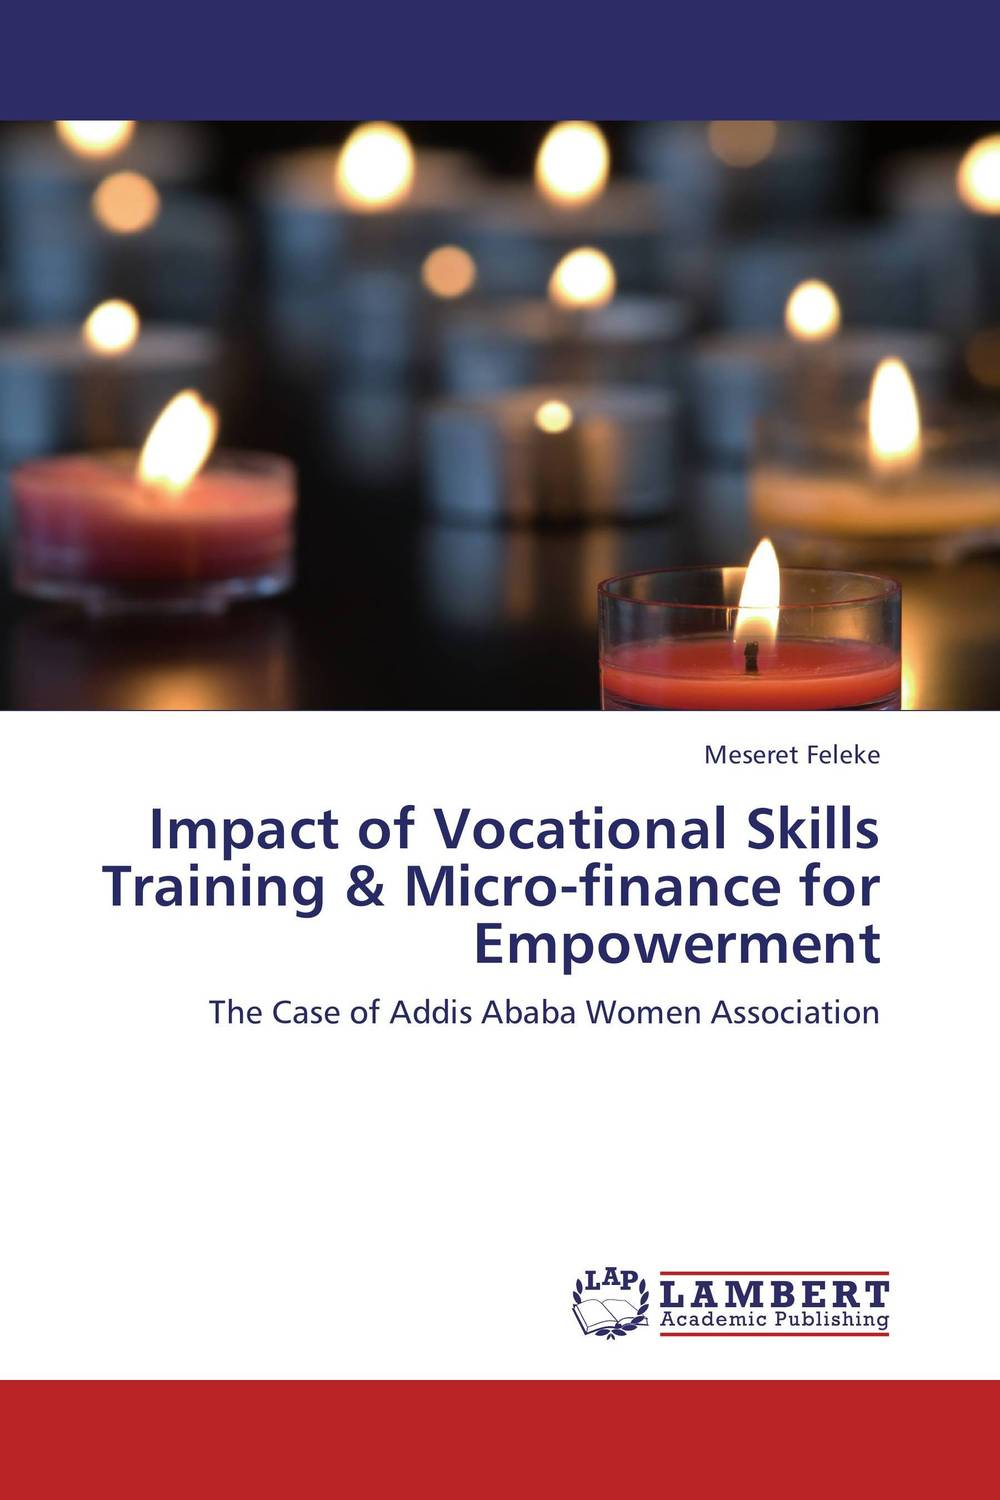 Impact of Vocational Skills Training & Micro-finance for Empowerment jill anne o sullivan validating academic training versus industry training using erp